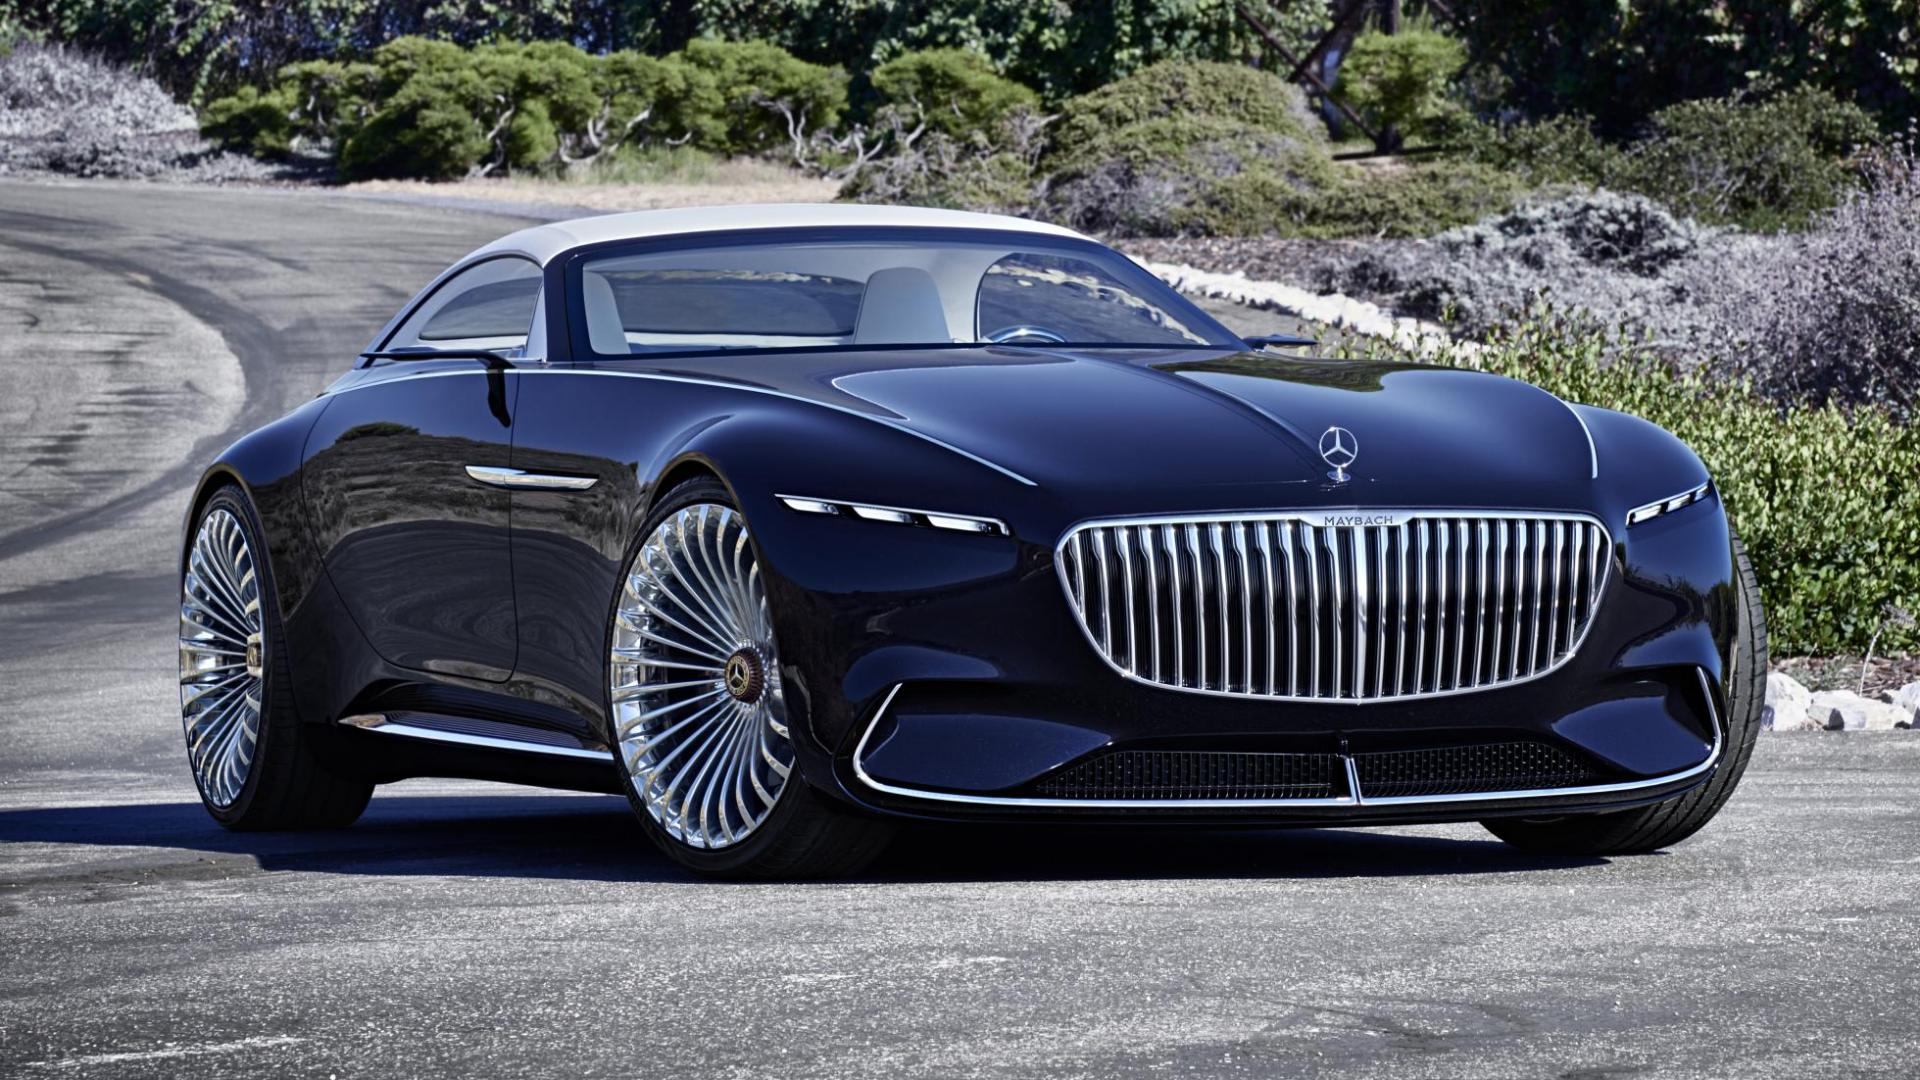 Dit is de vision mercedes maybach 6 cabrio topgear nederland for Mercedes benz top of the line